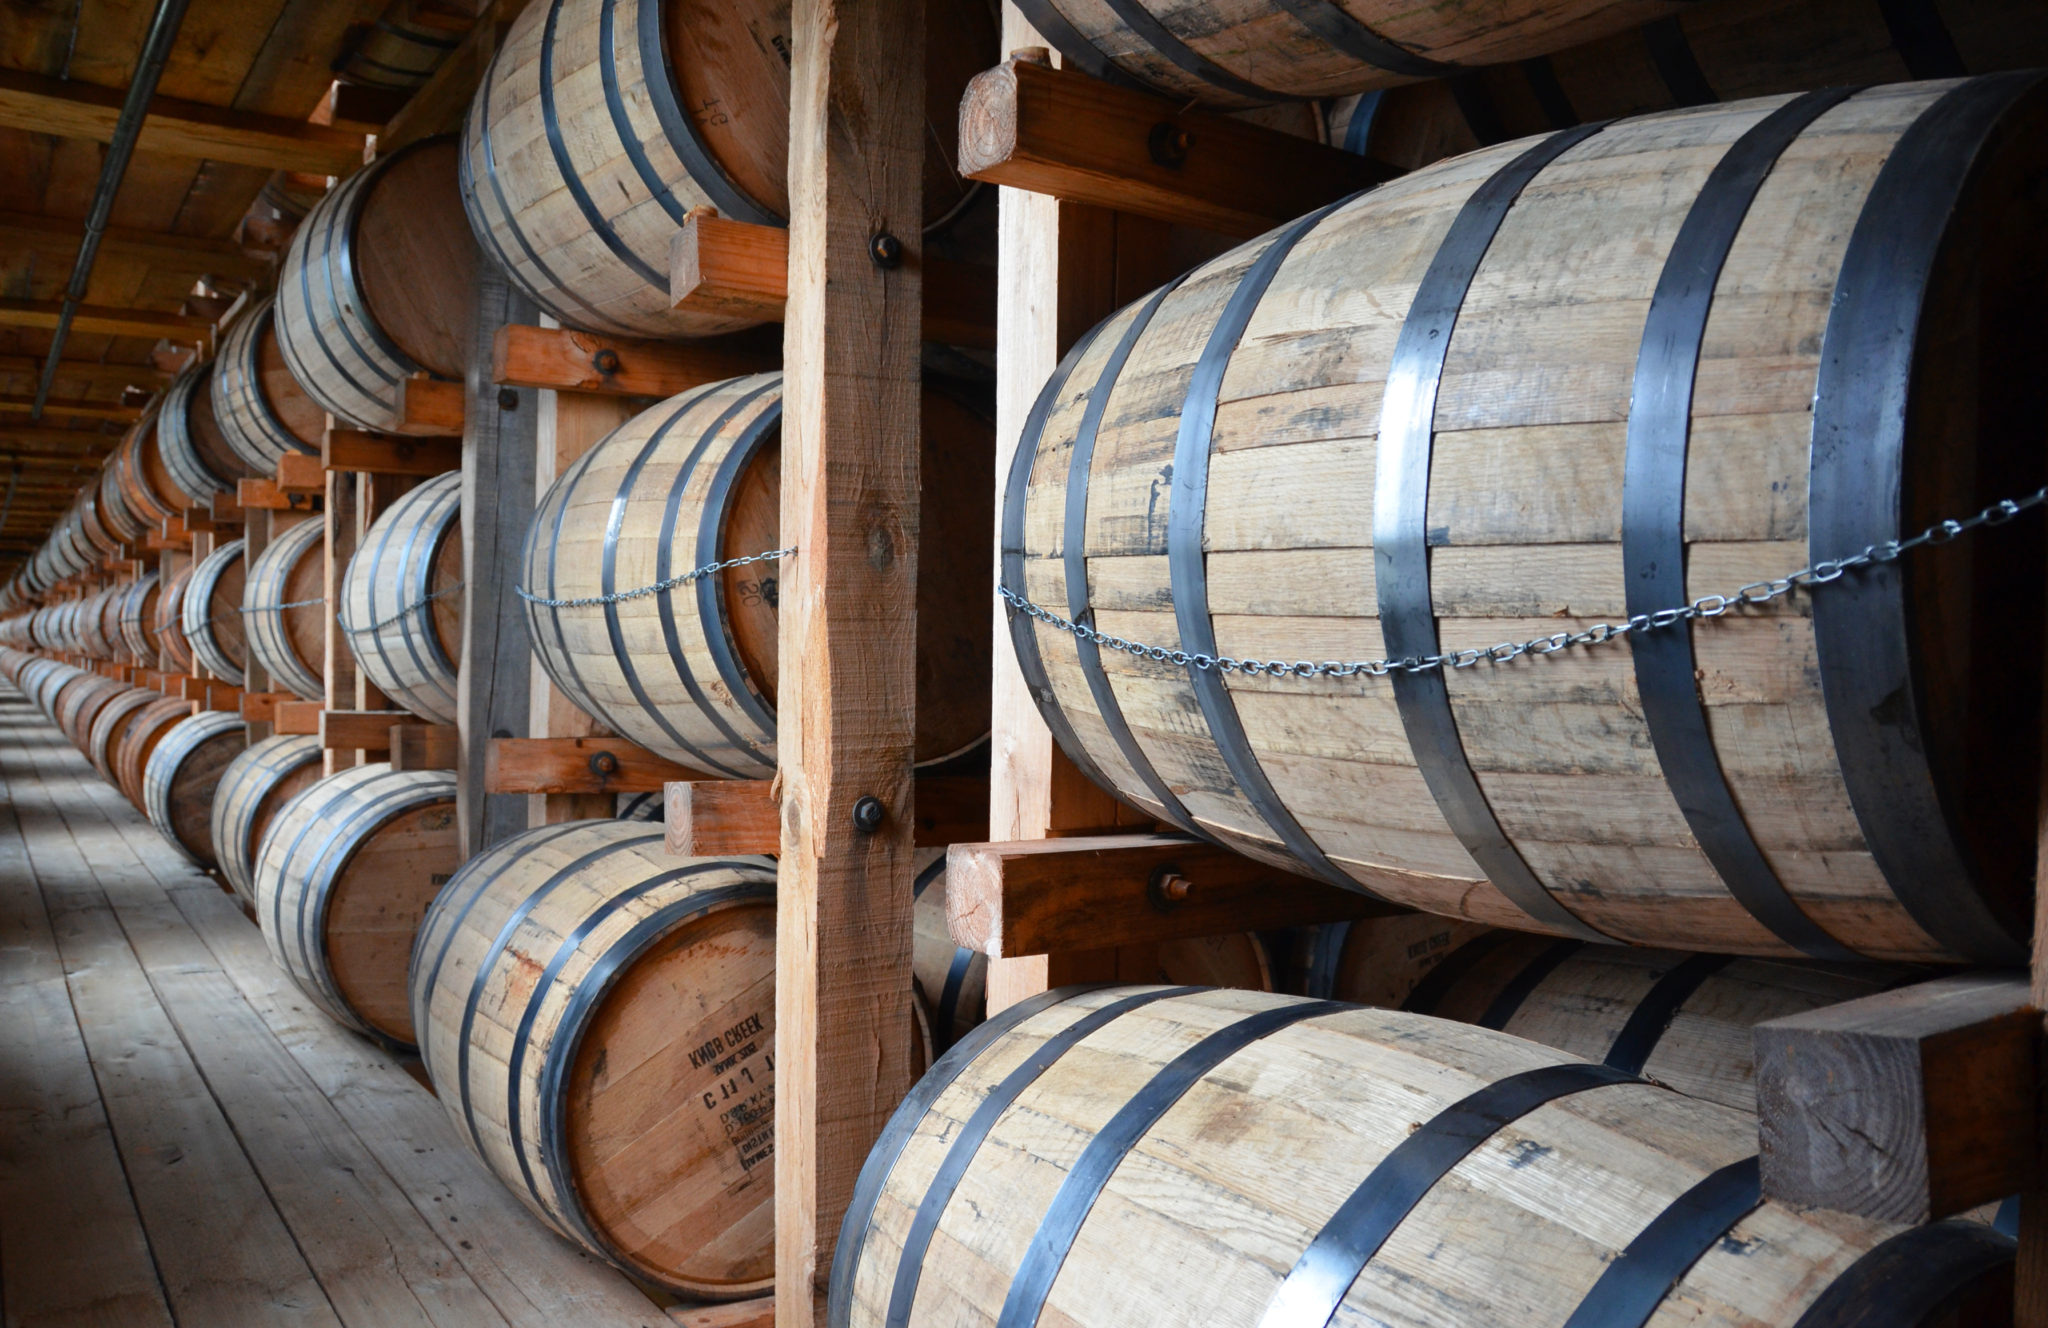 How to store whiskey?